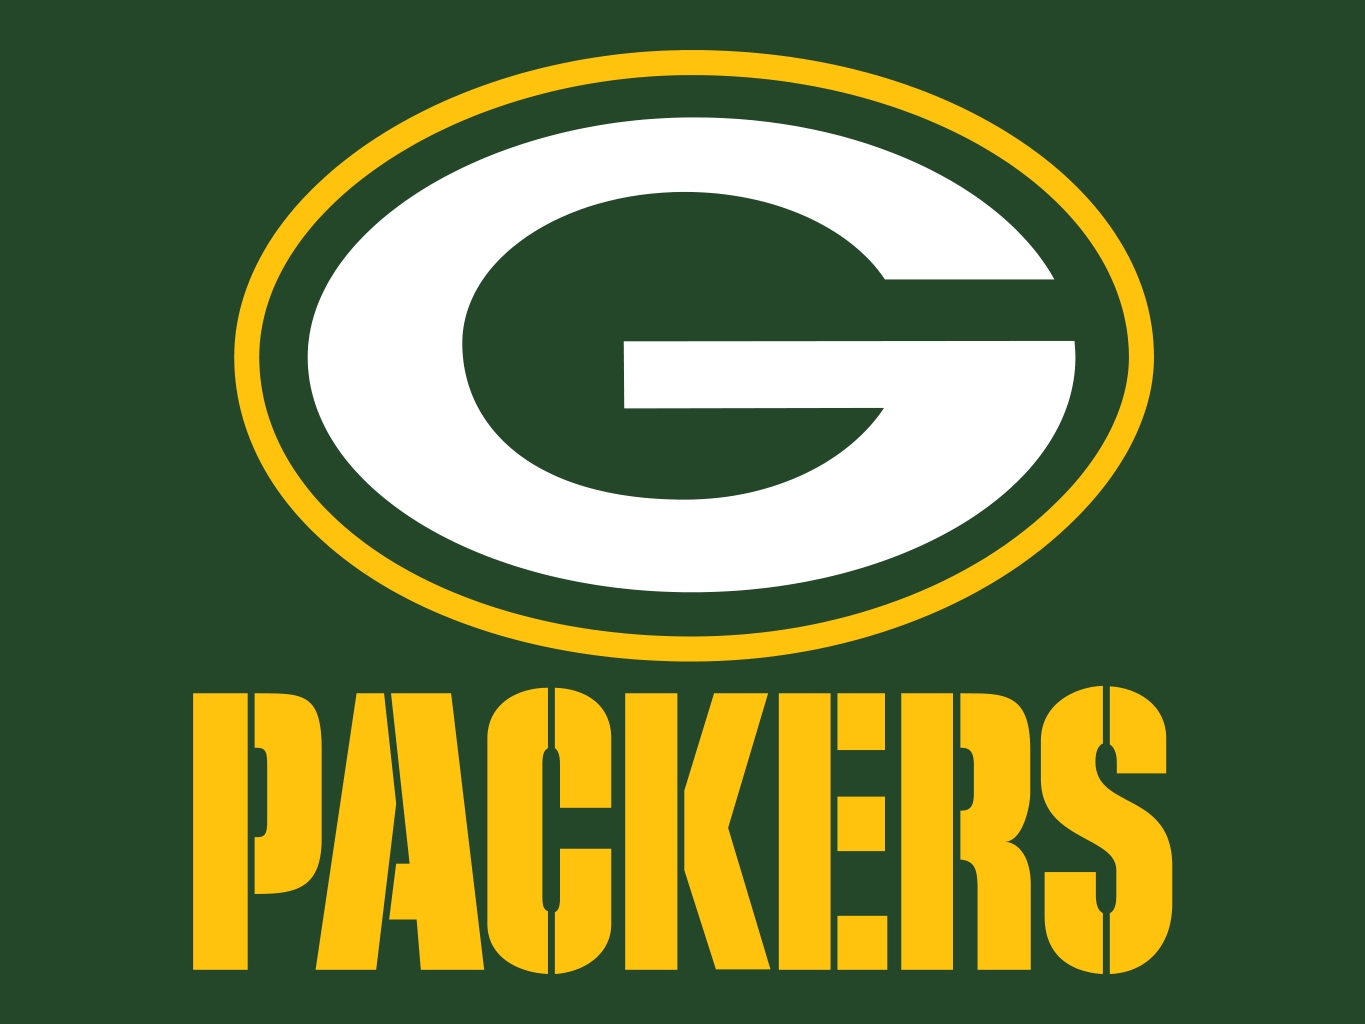 Packers Clipart - Clipart Kid